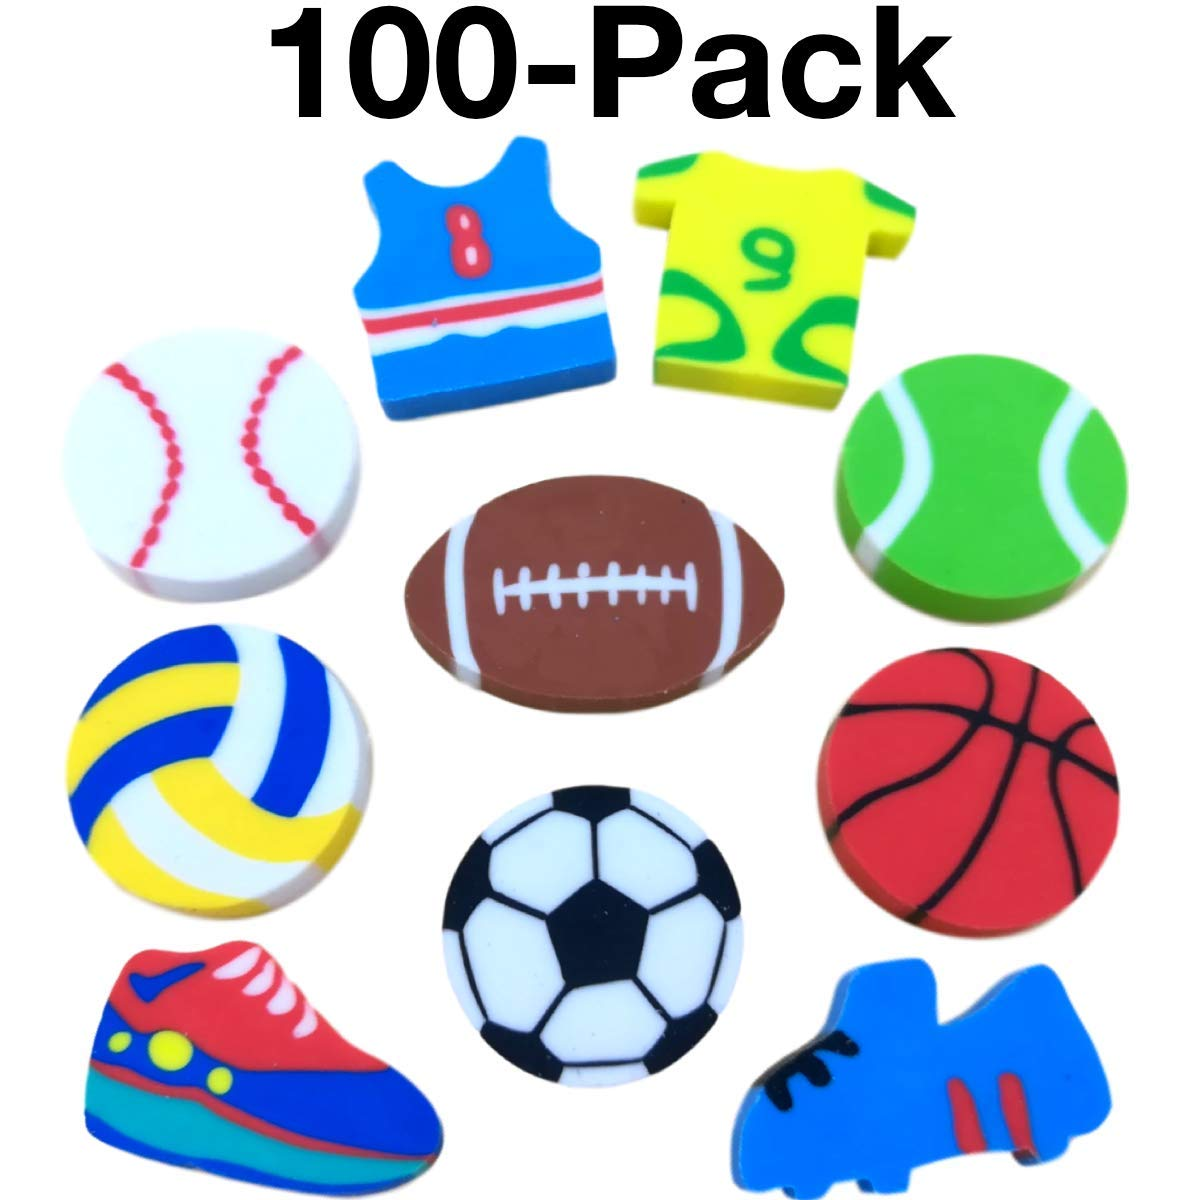 OHill Pack of 100 Sports Pencil Erasers Novelty Erasers for Sports Party Favors for Kids School Classroom Prizes Rewards Valued Pack by OHill (Image #1)